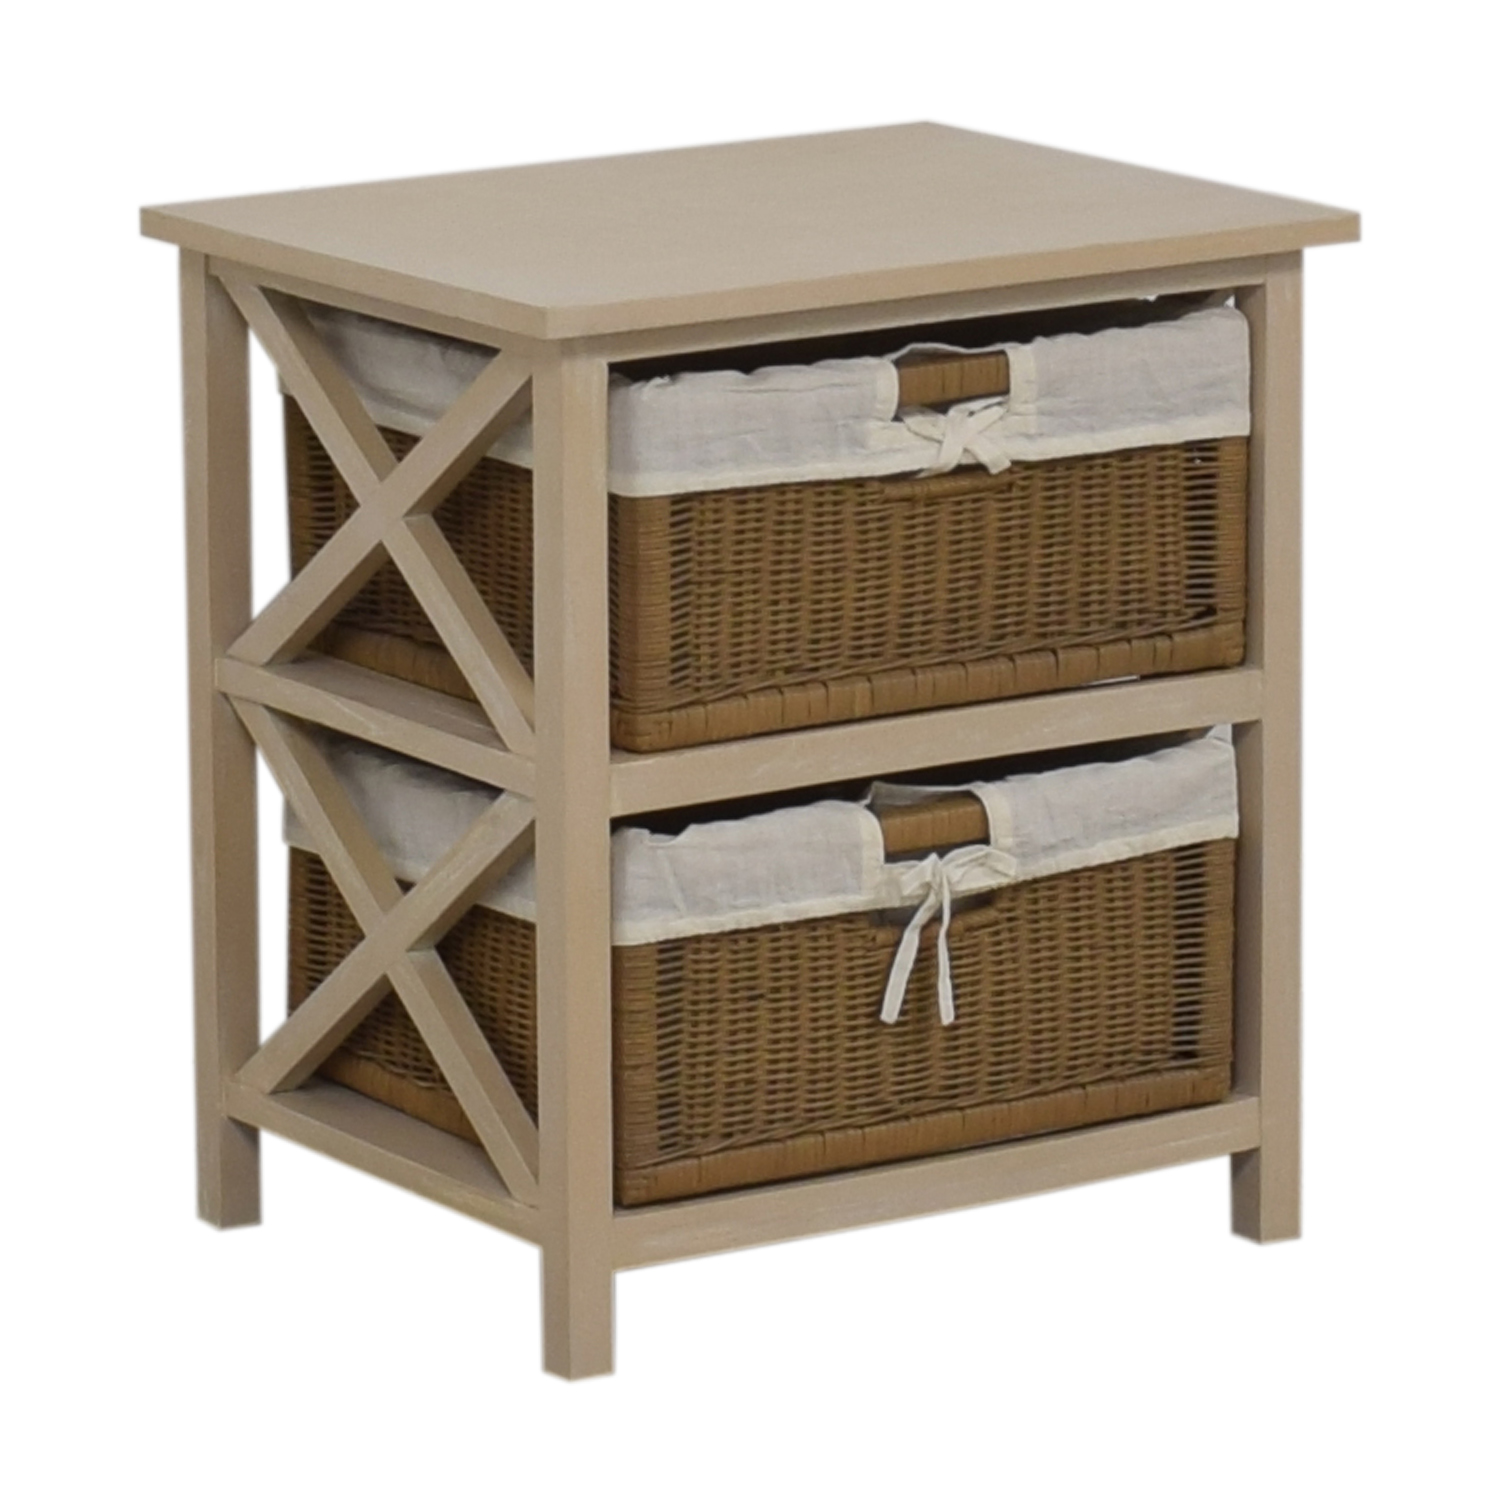 End Table With Two Wicker Baskets light gray